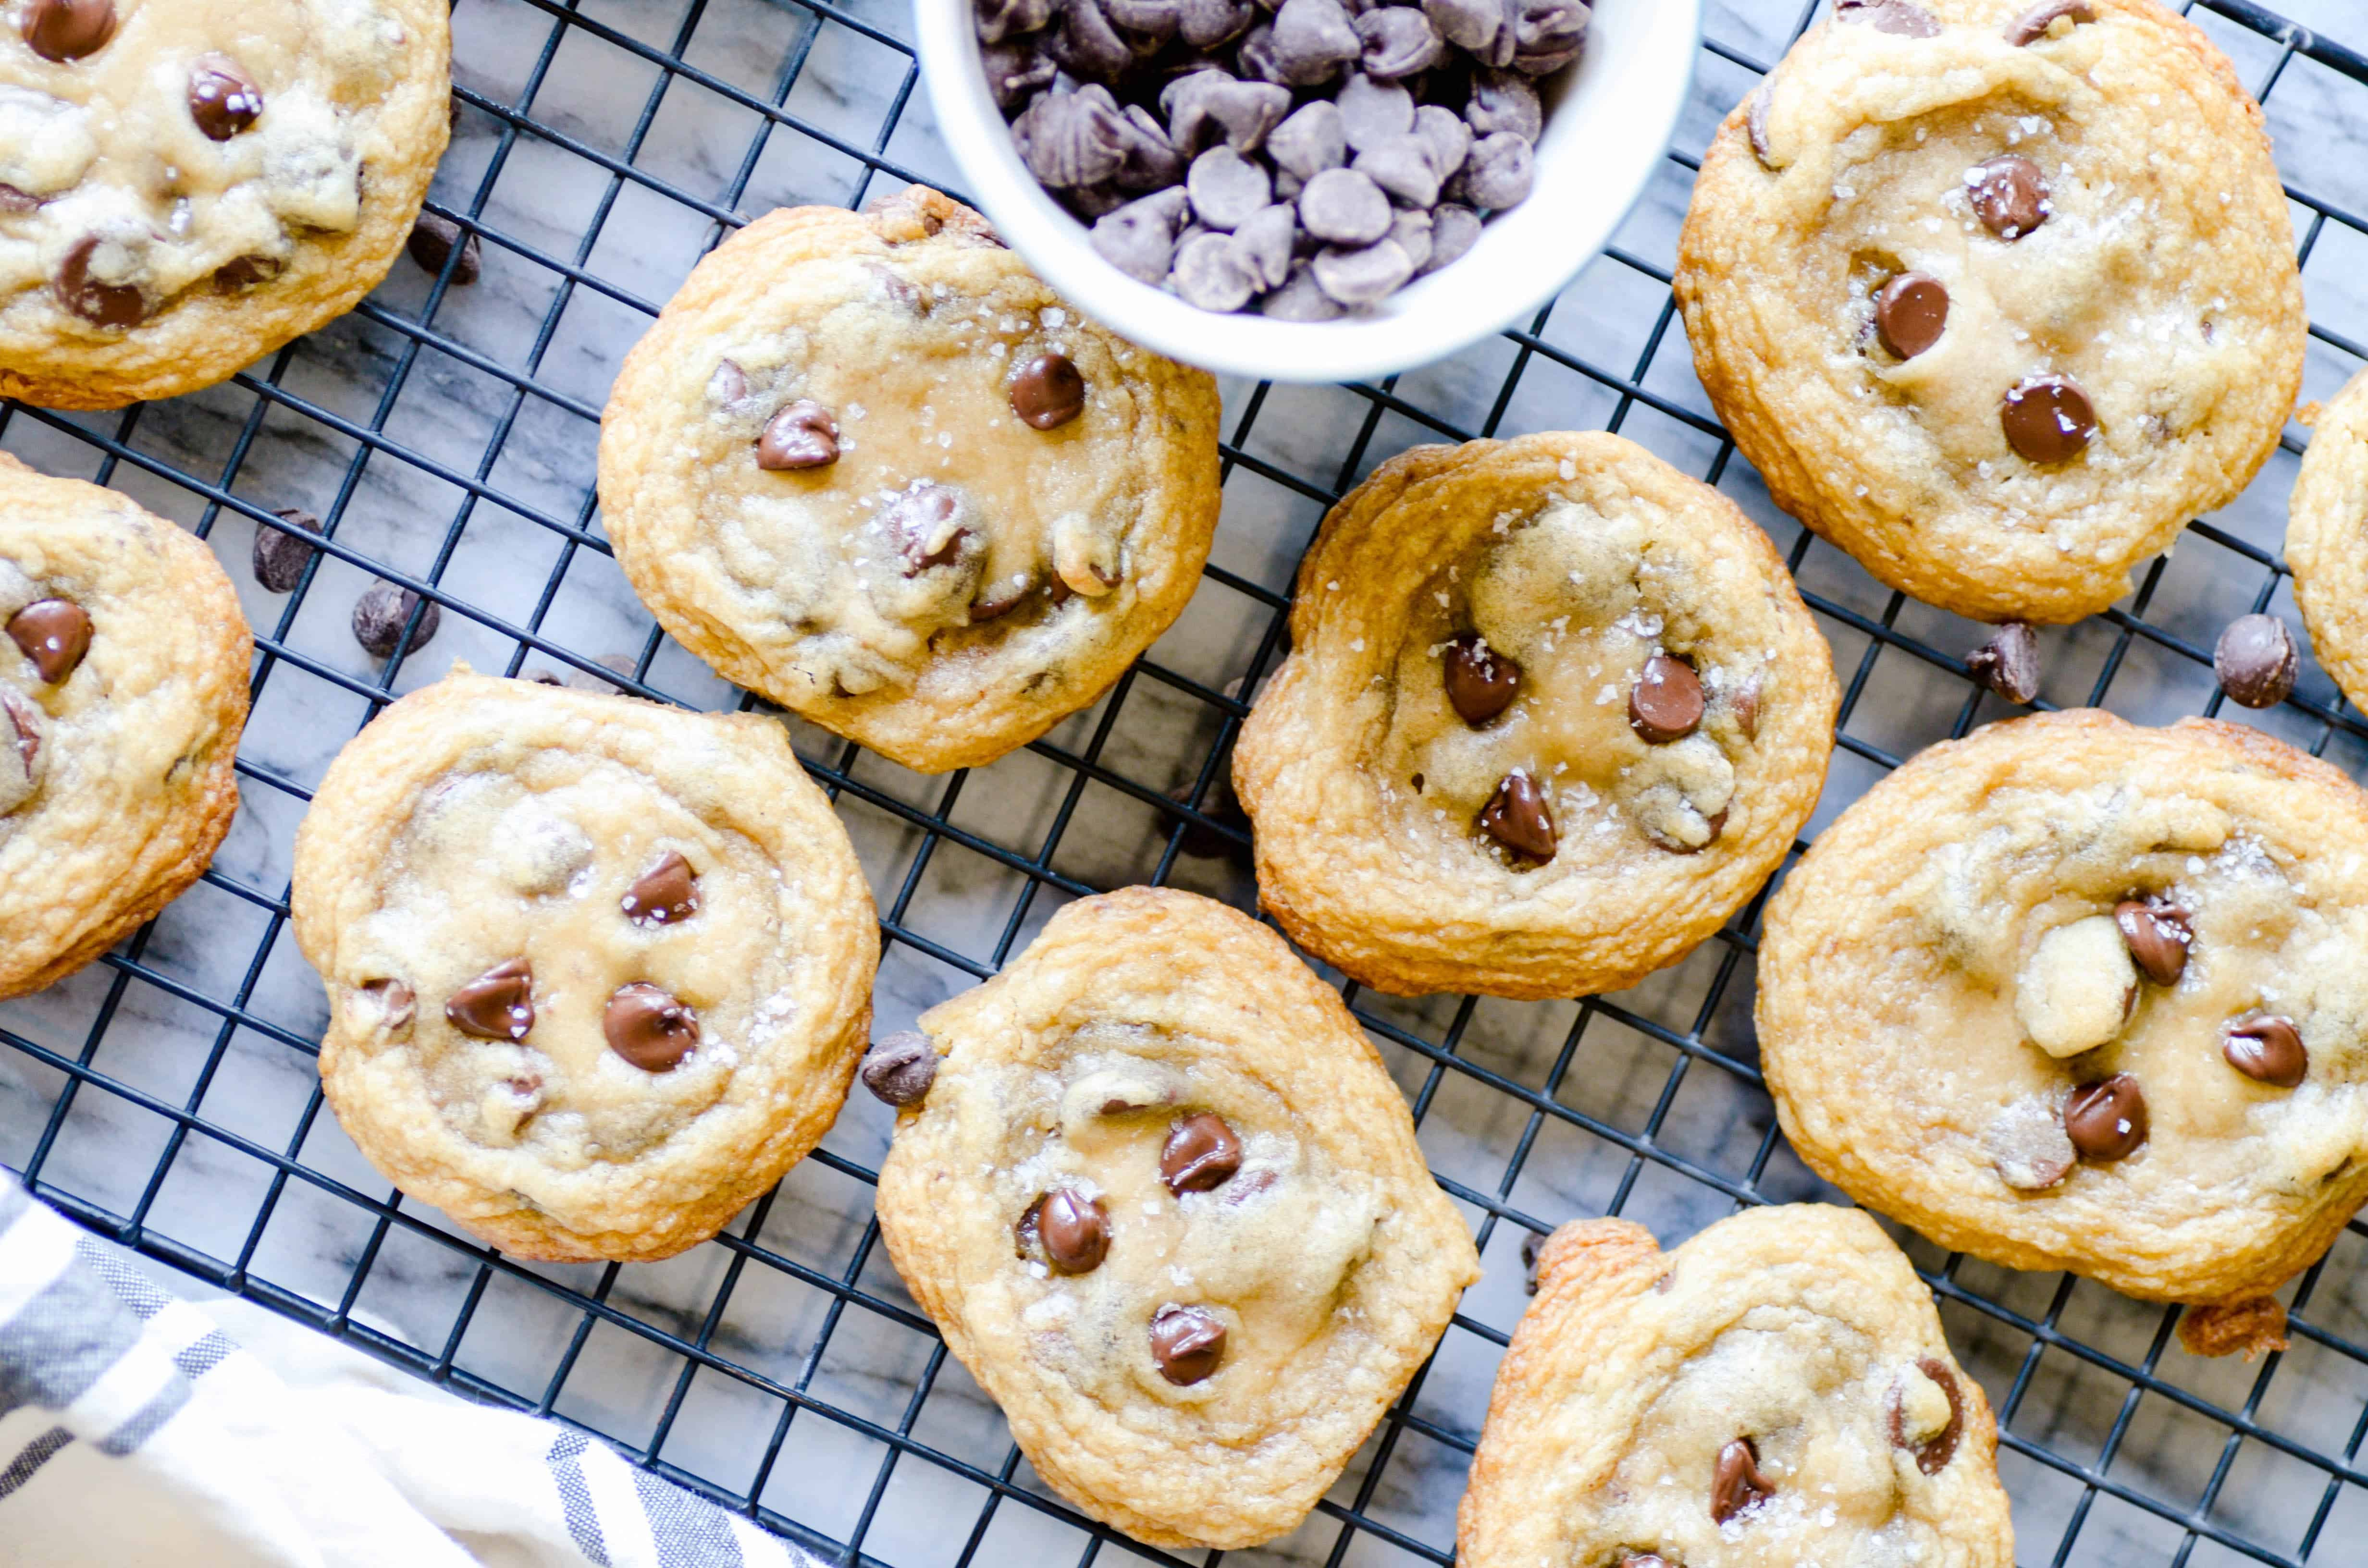 Everyone in my family was fighting over who got to eat the last cookie! These coconut oil chocolate chip cookies have sweet notes of vanilla and coconut, chewy edges, gooey centers, and lots of chocolate.